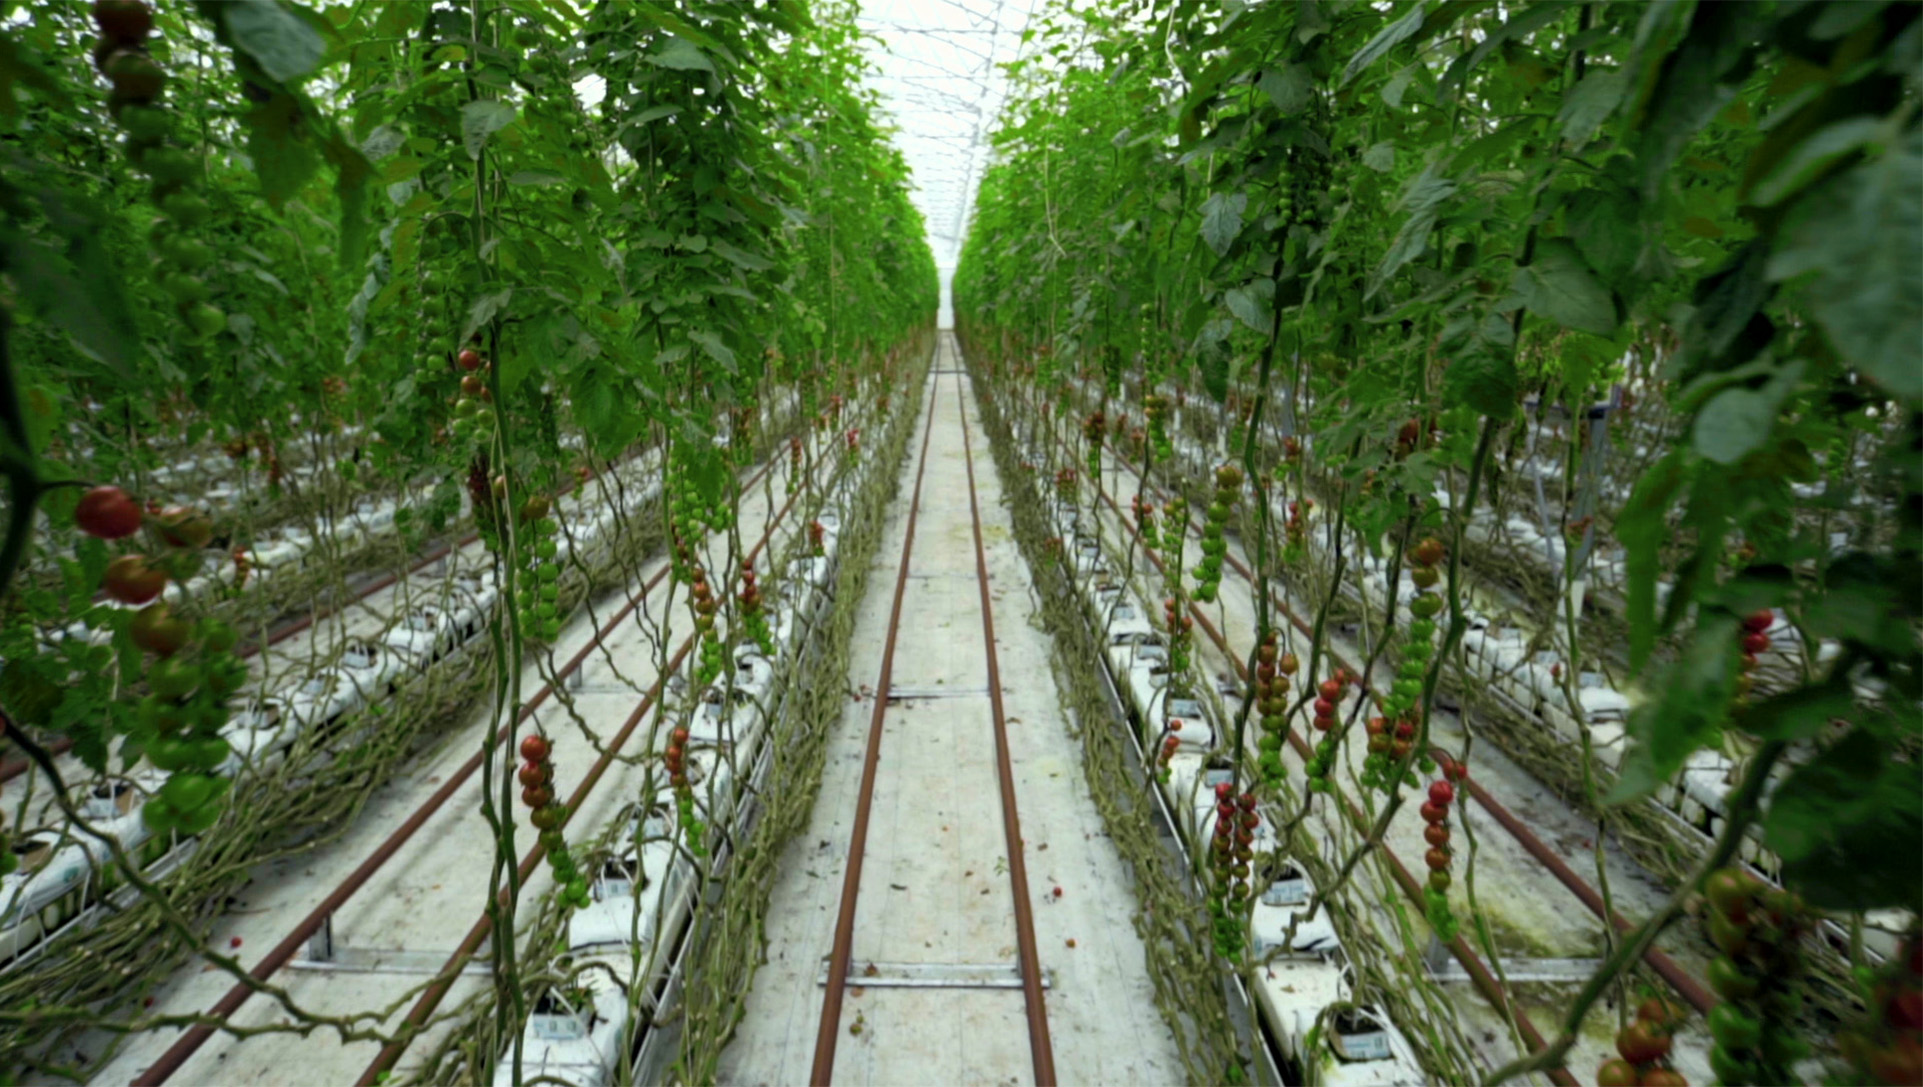 Tomato farming and production in greenhouse | Cat phones